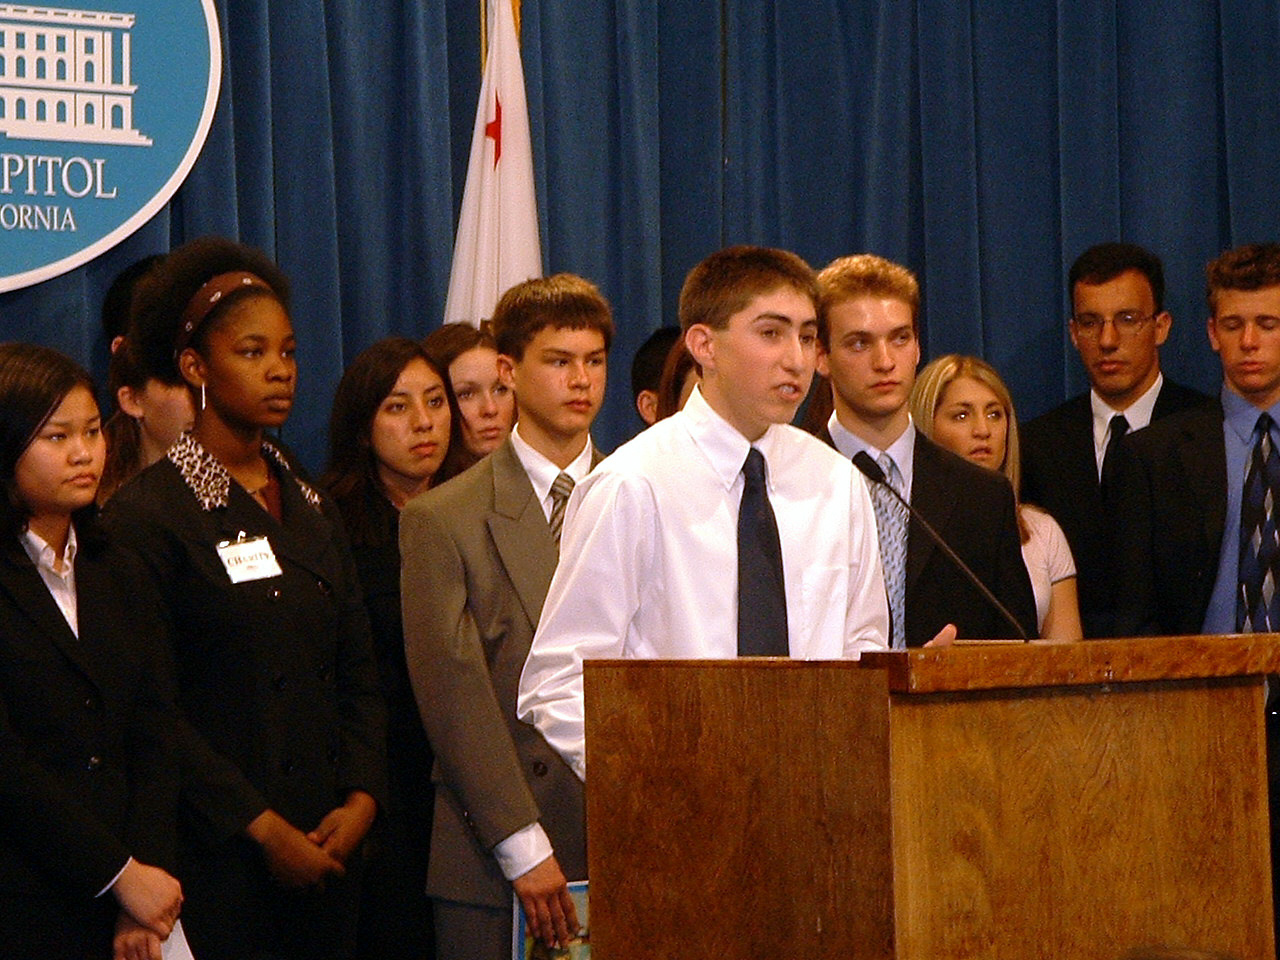 Press Conference to Lower the Voting Age in California